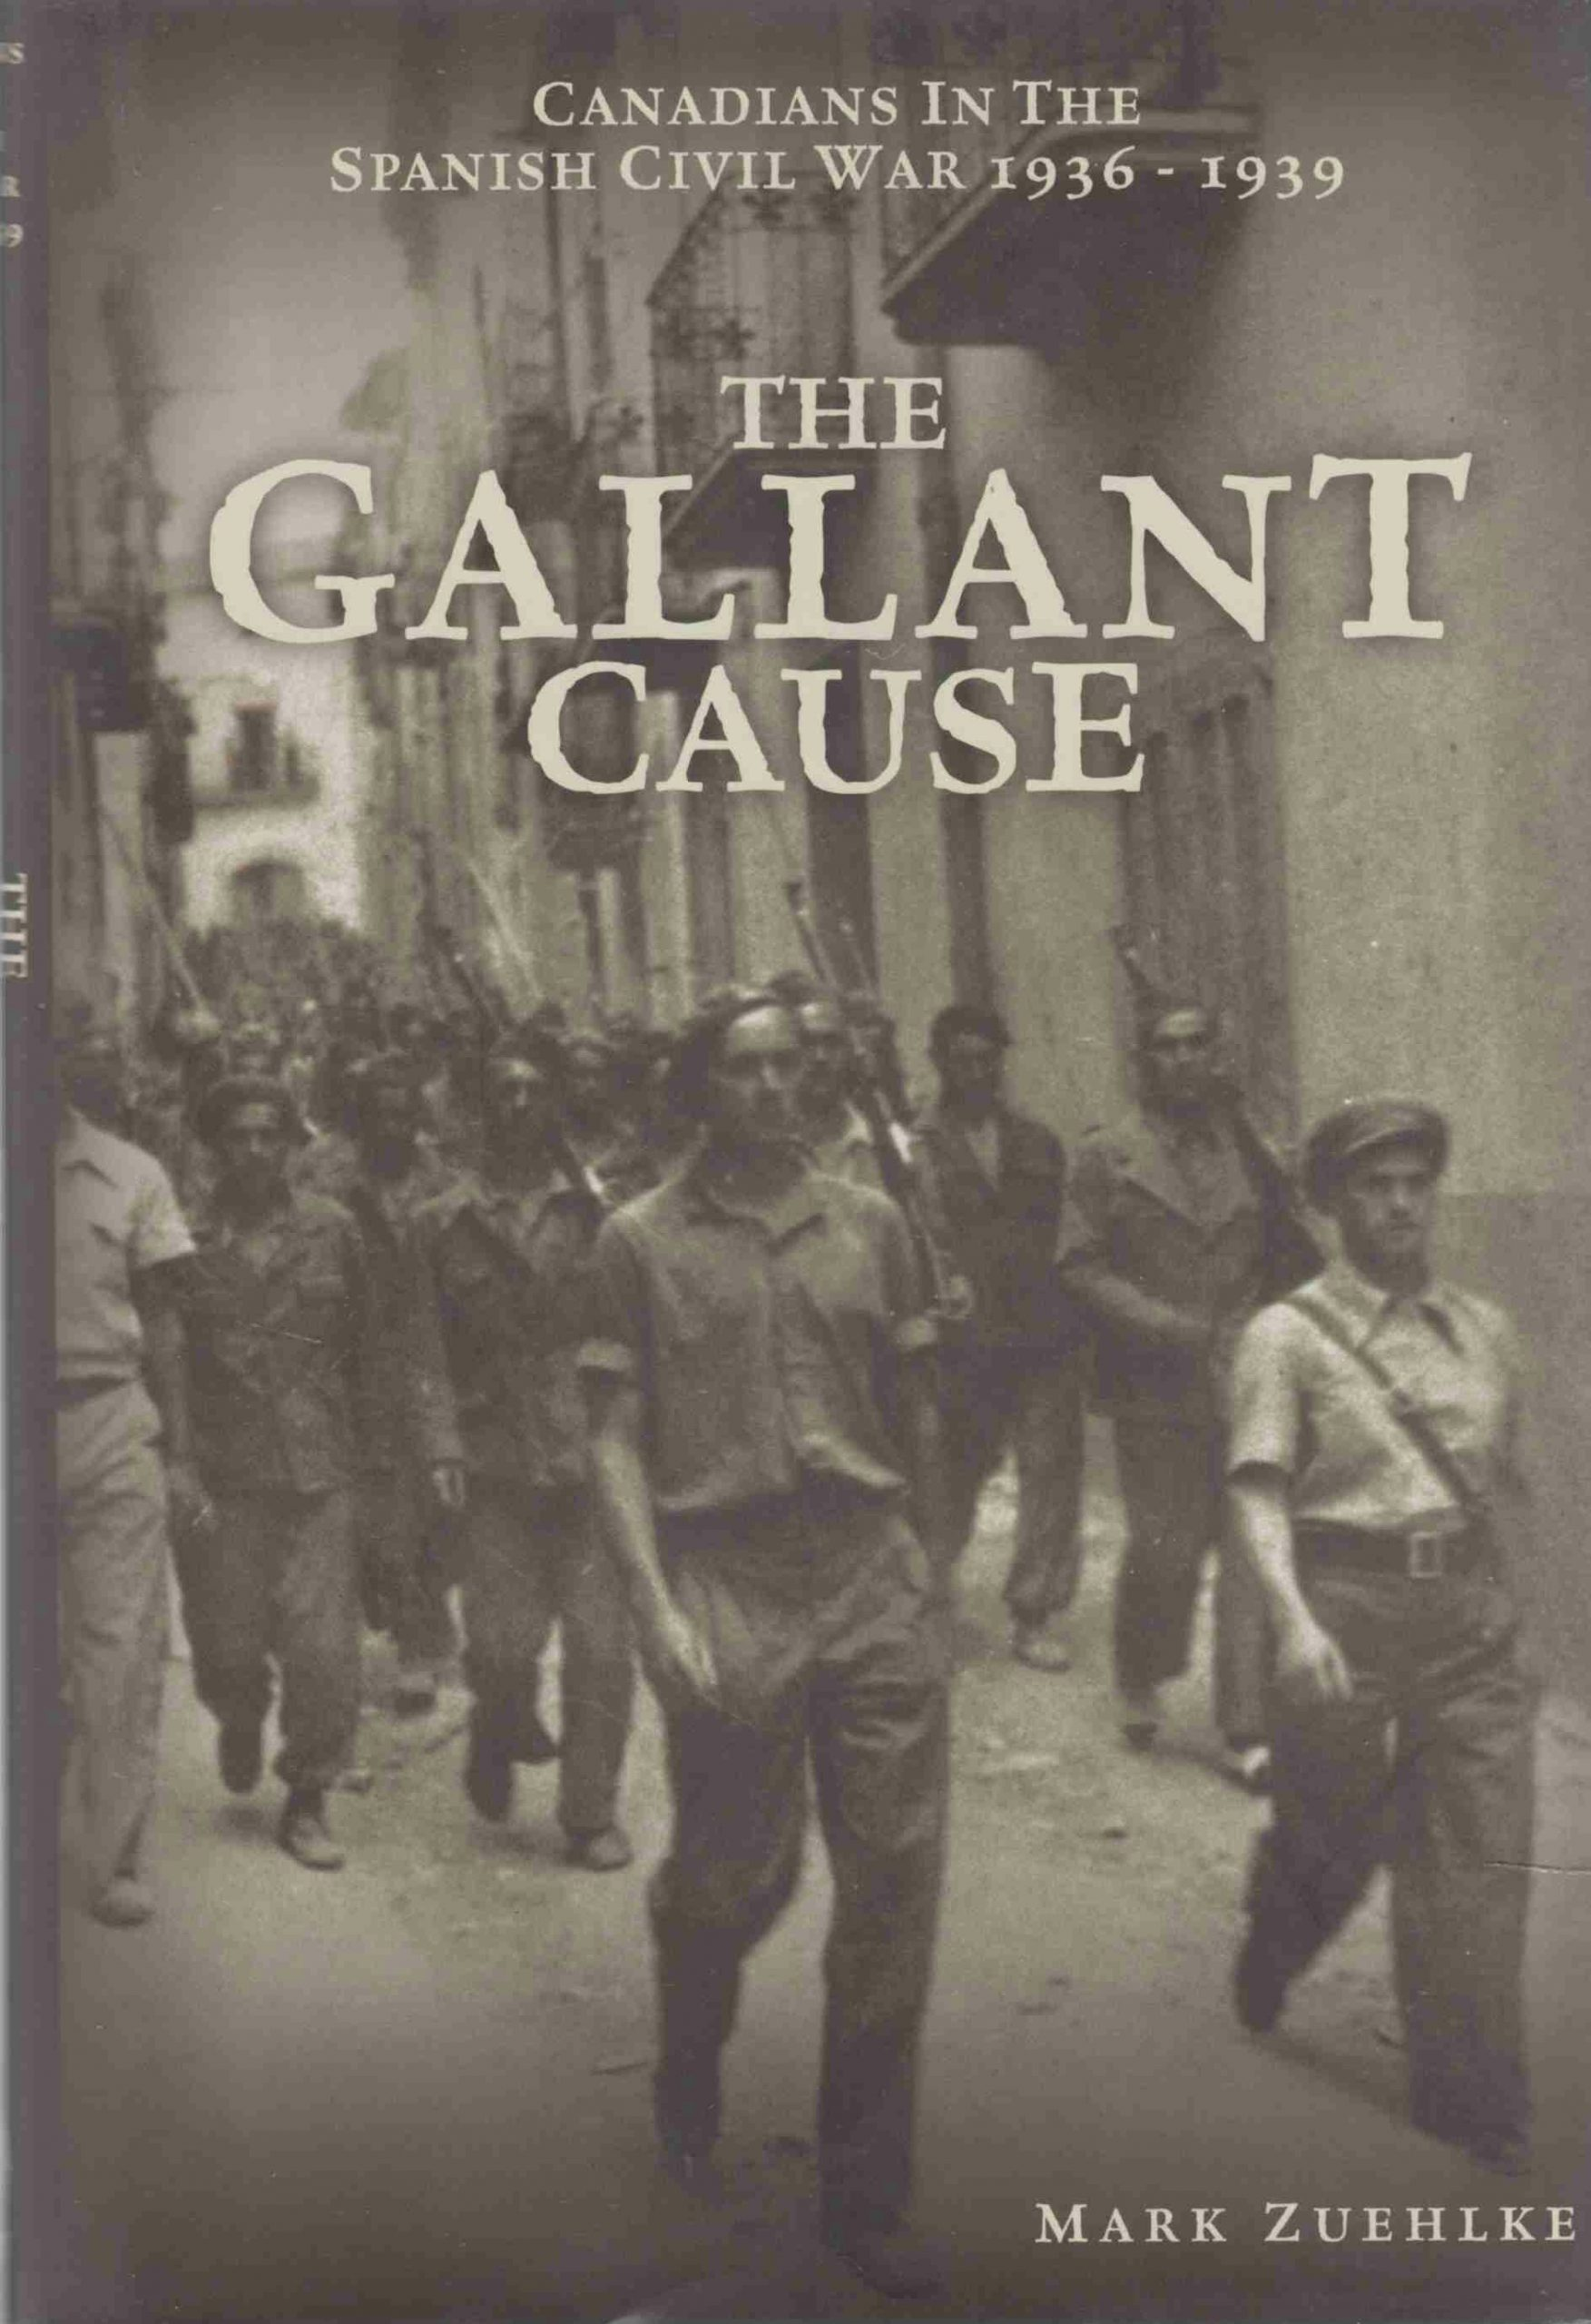 Excerpt From The Gallant Cause